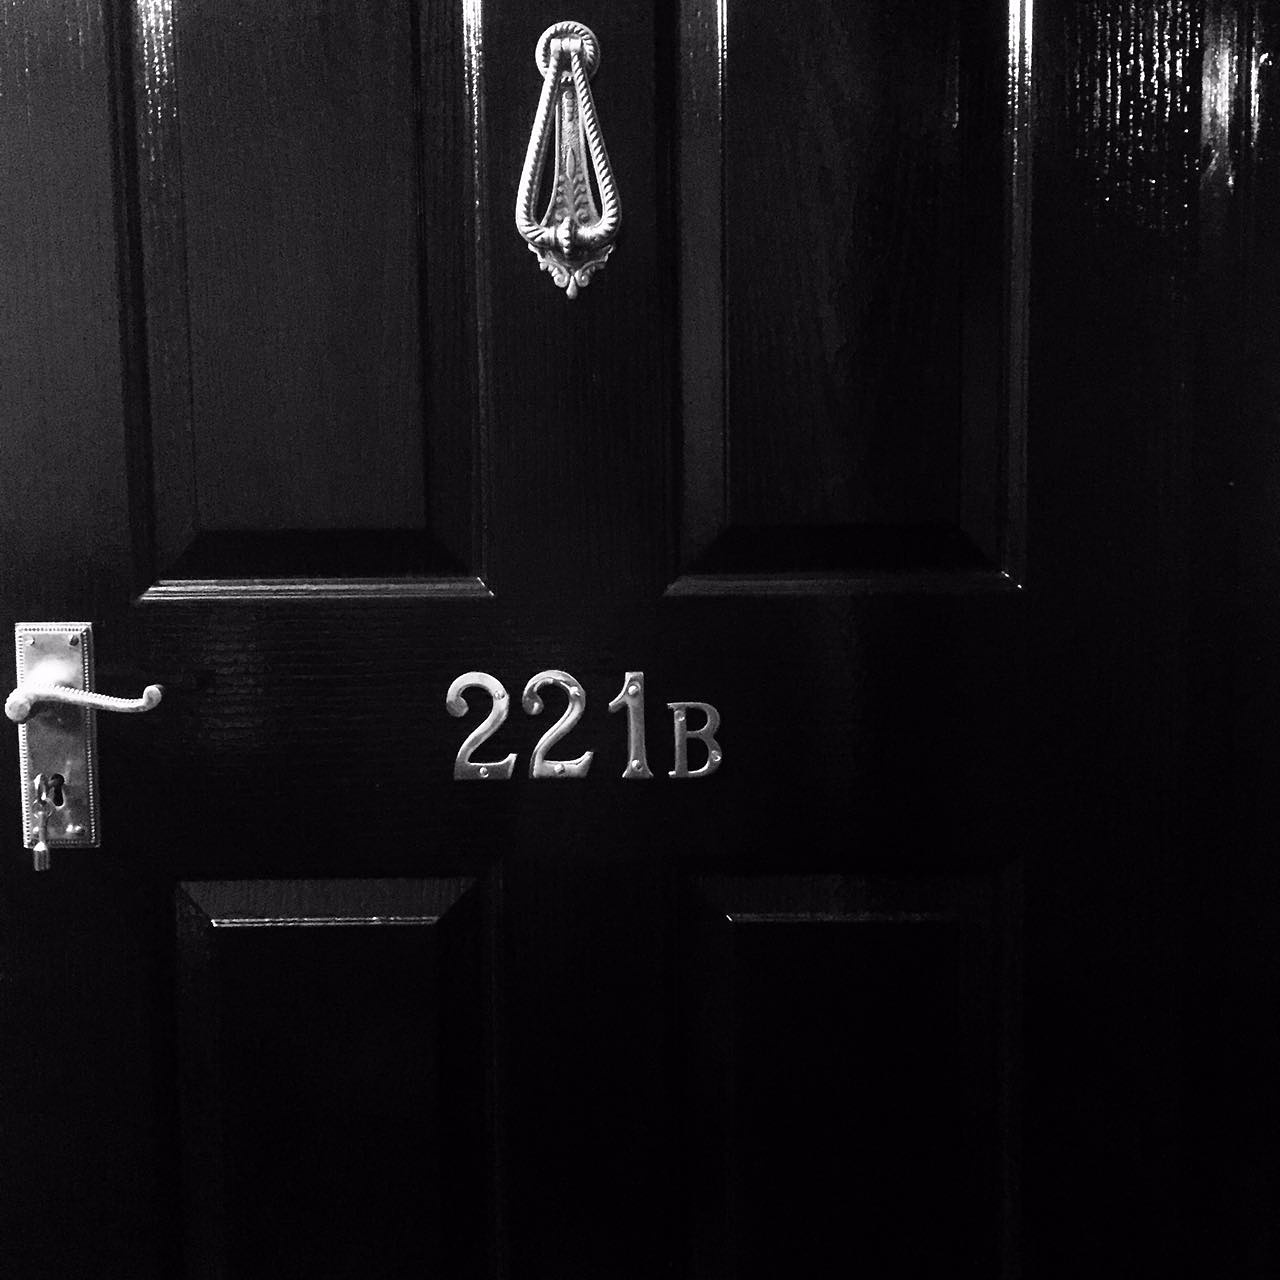 Sherlocked door